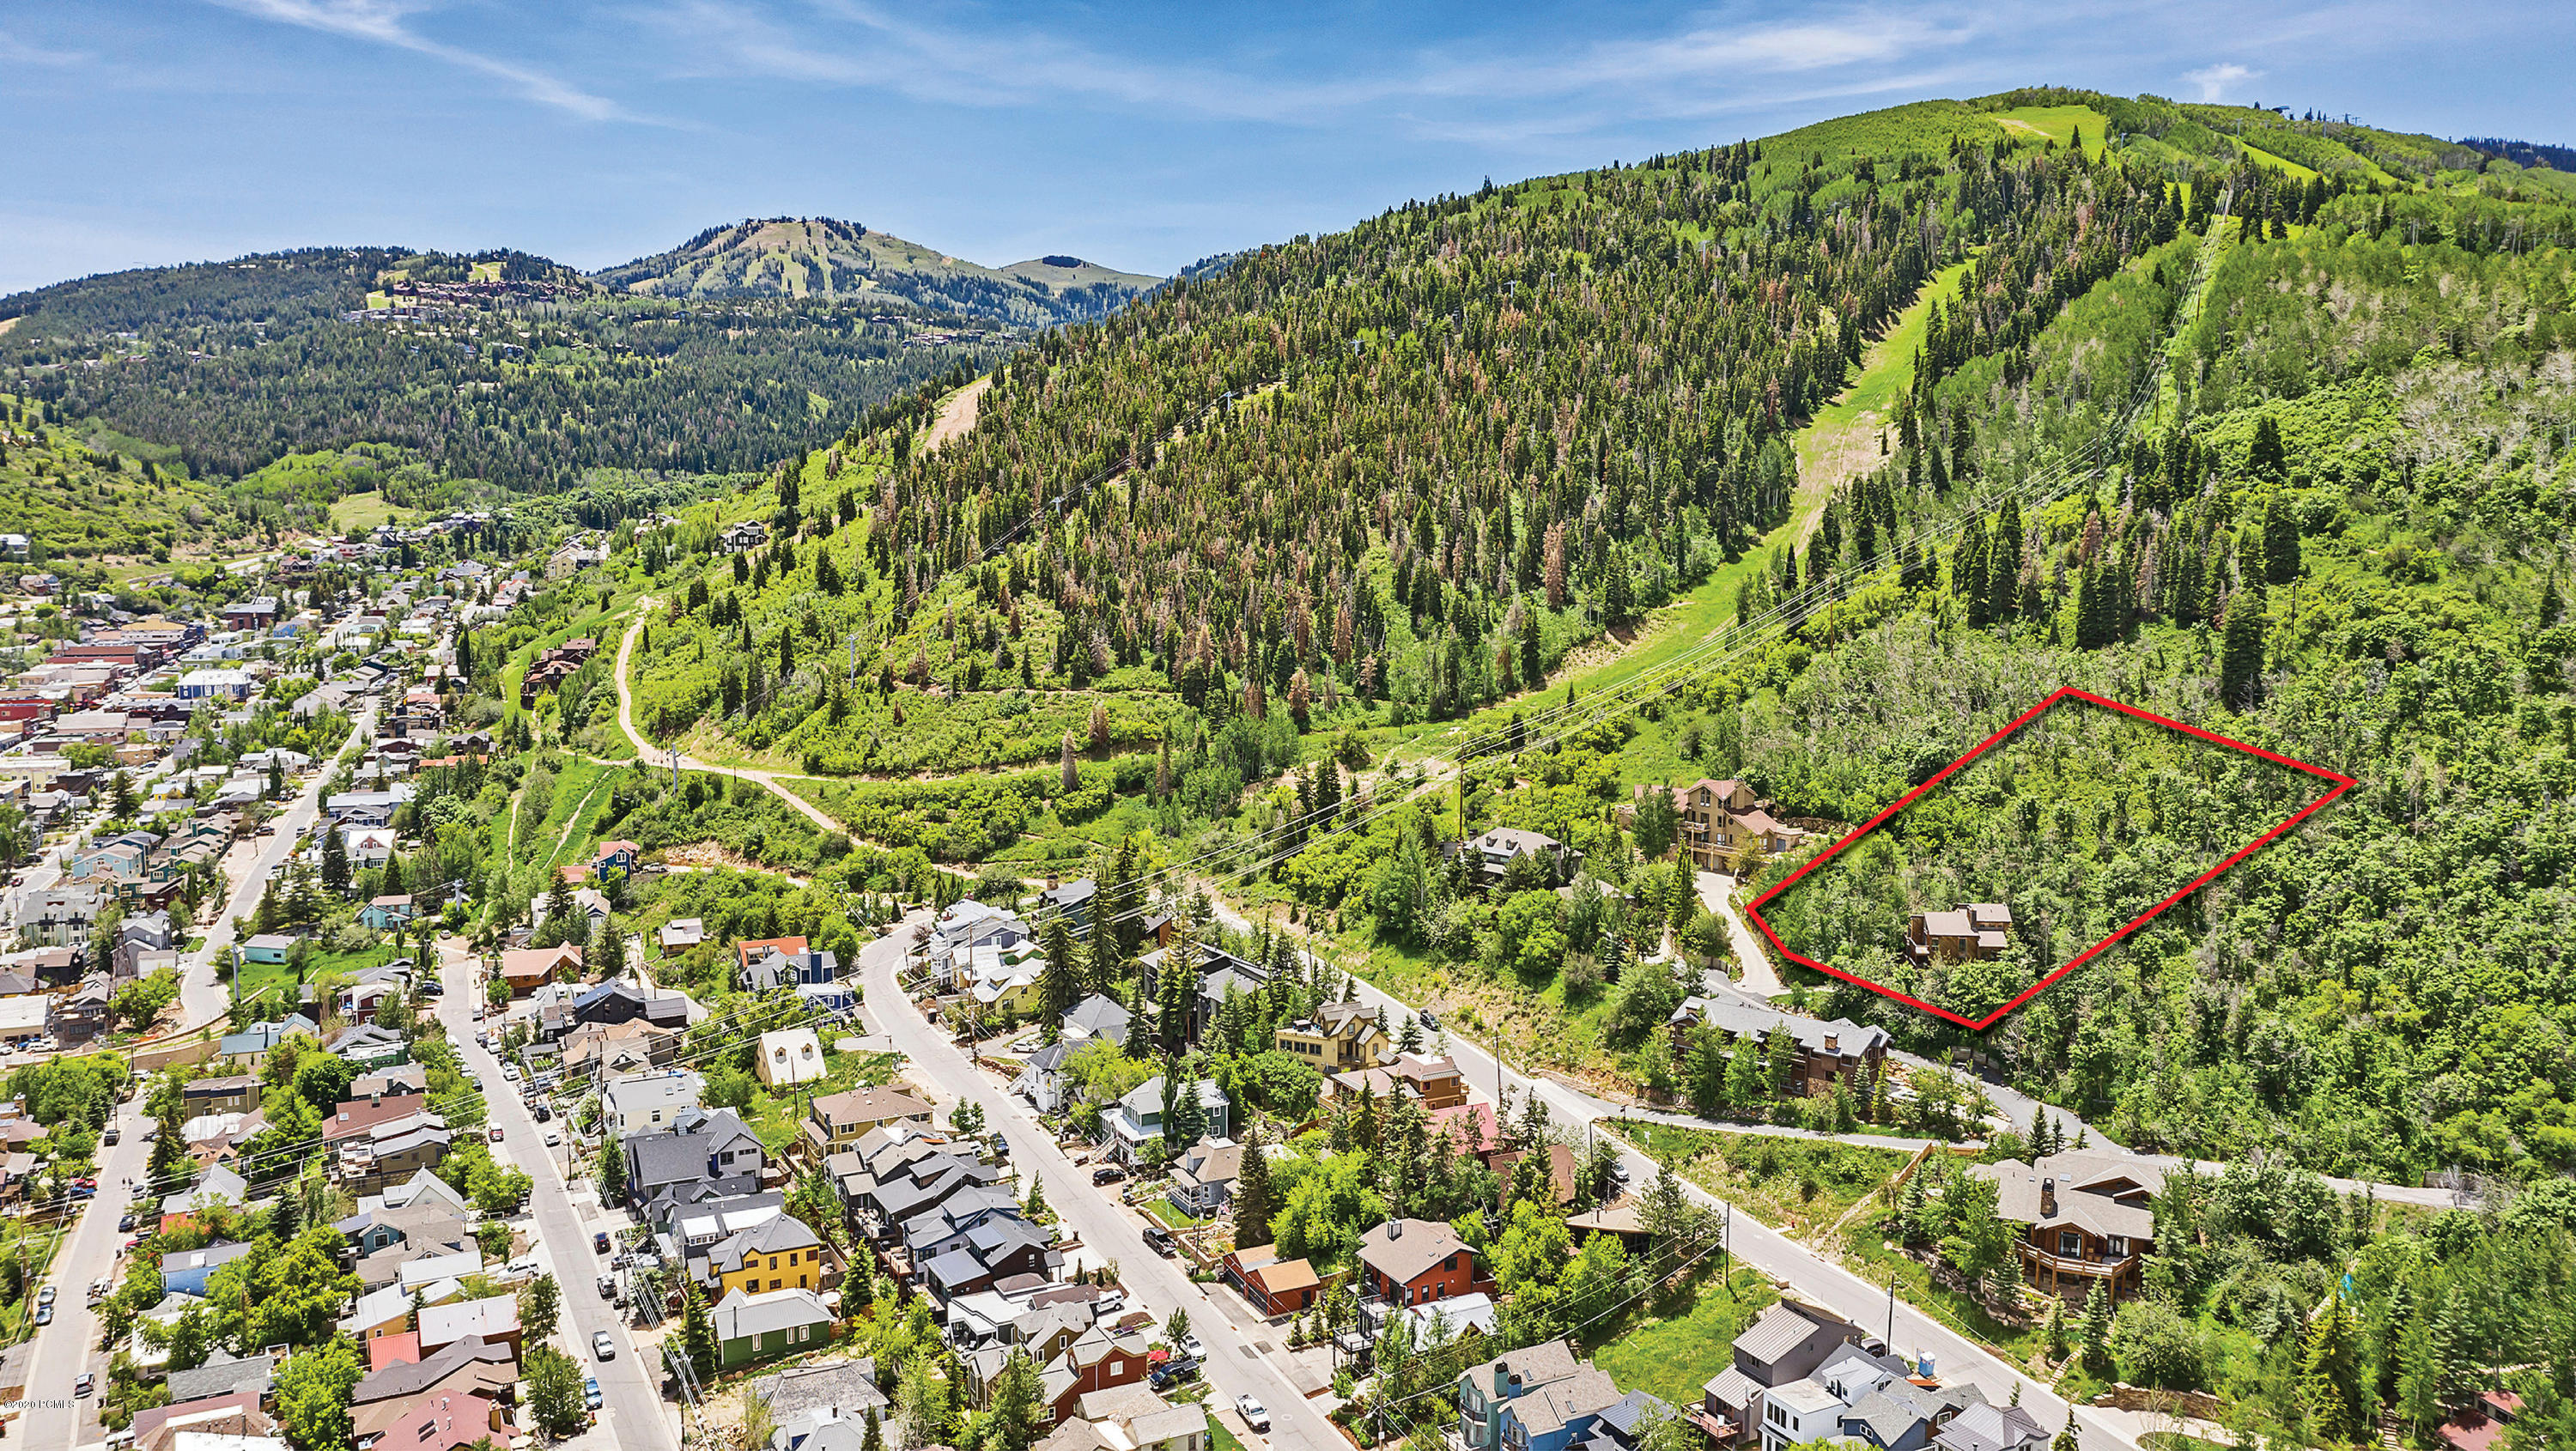 947 Northstar Drive, Park City, Utah 84060, ,Land,For Sale,Northstar,20190109112430415765000000